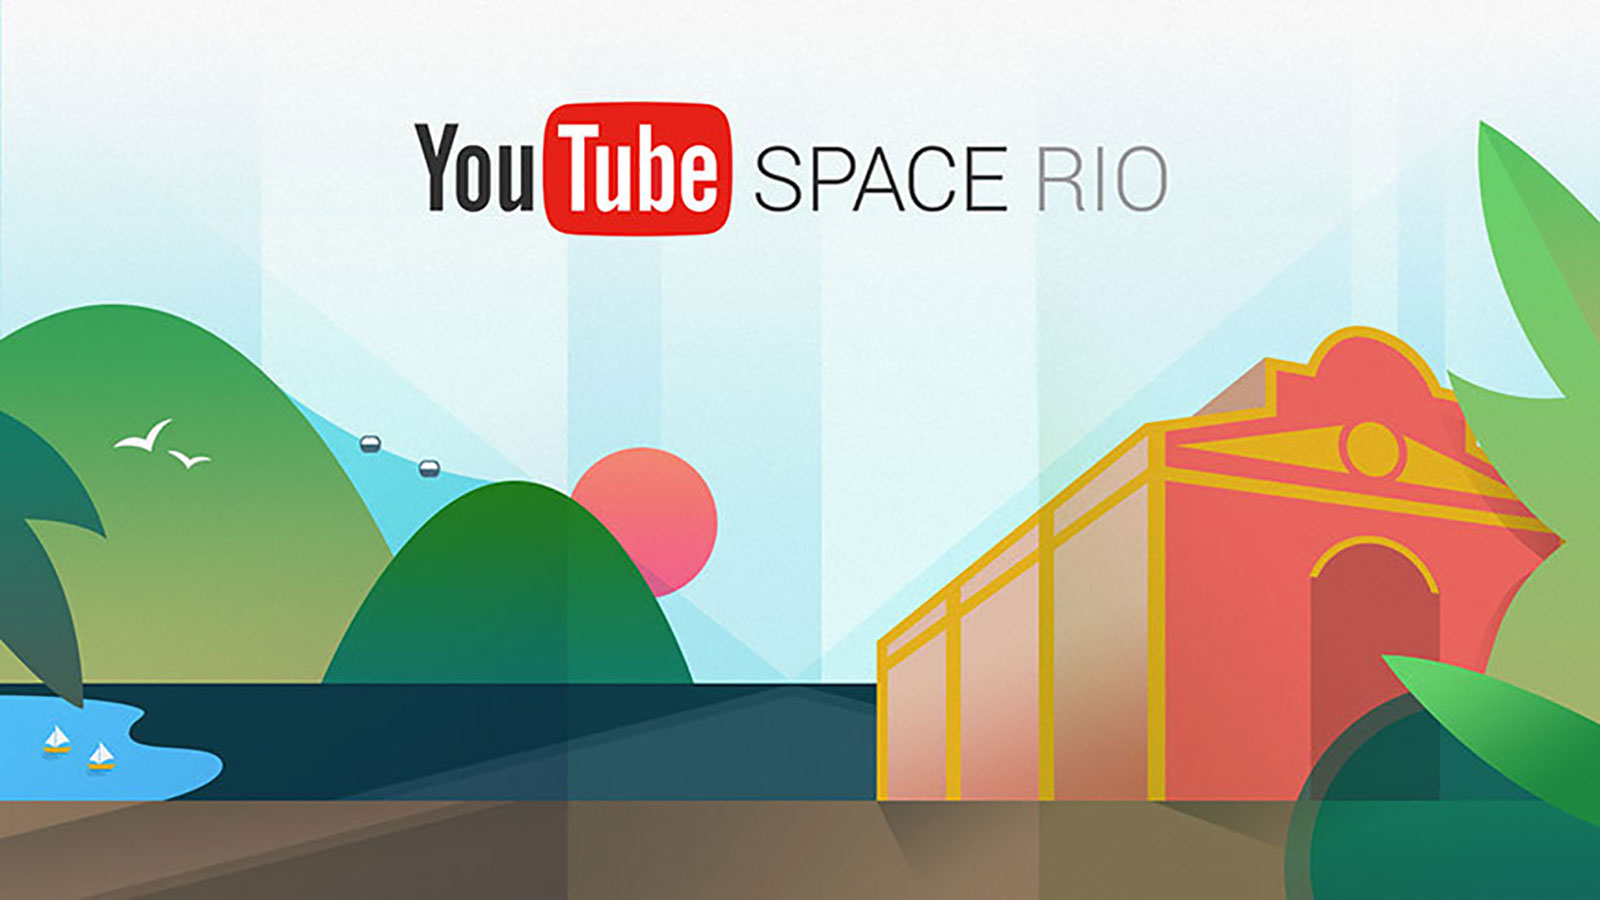 YouTube Space Rio